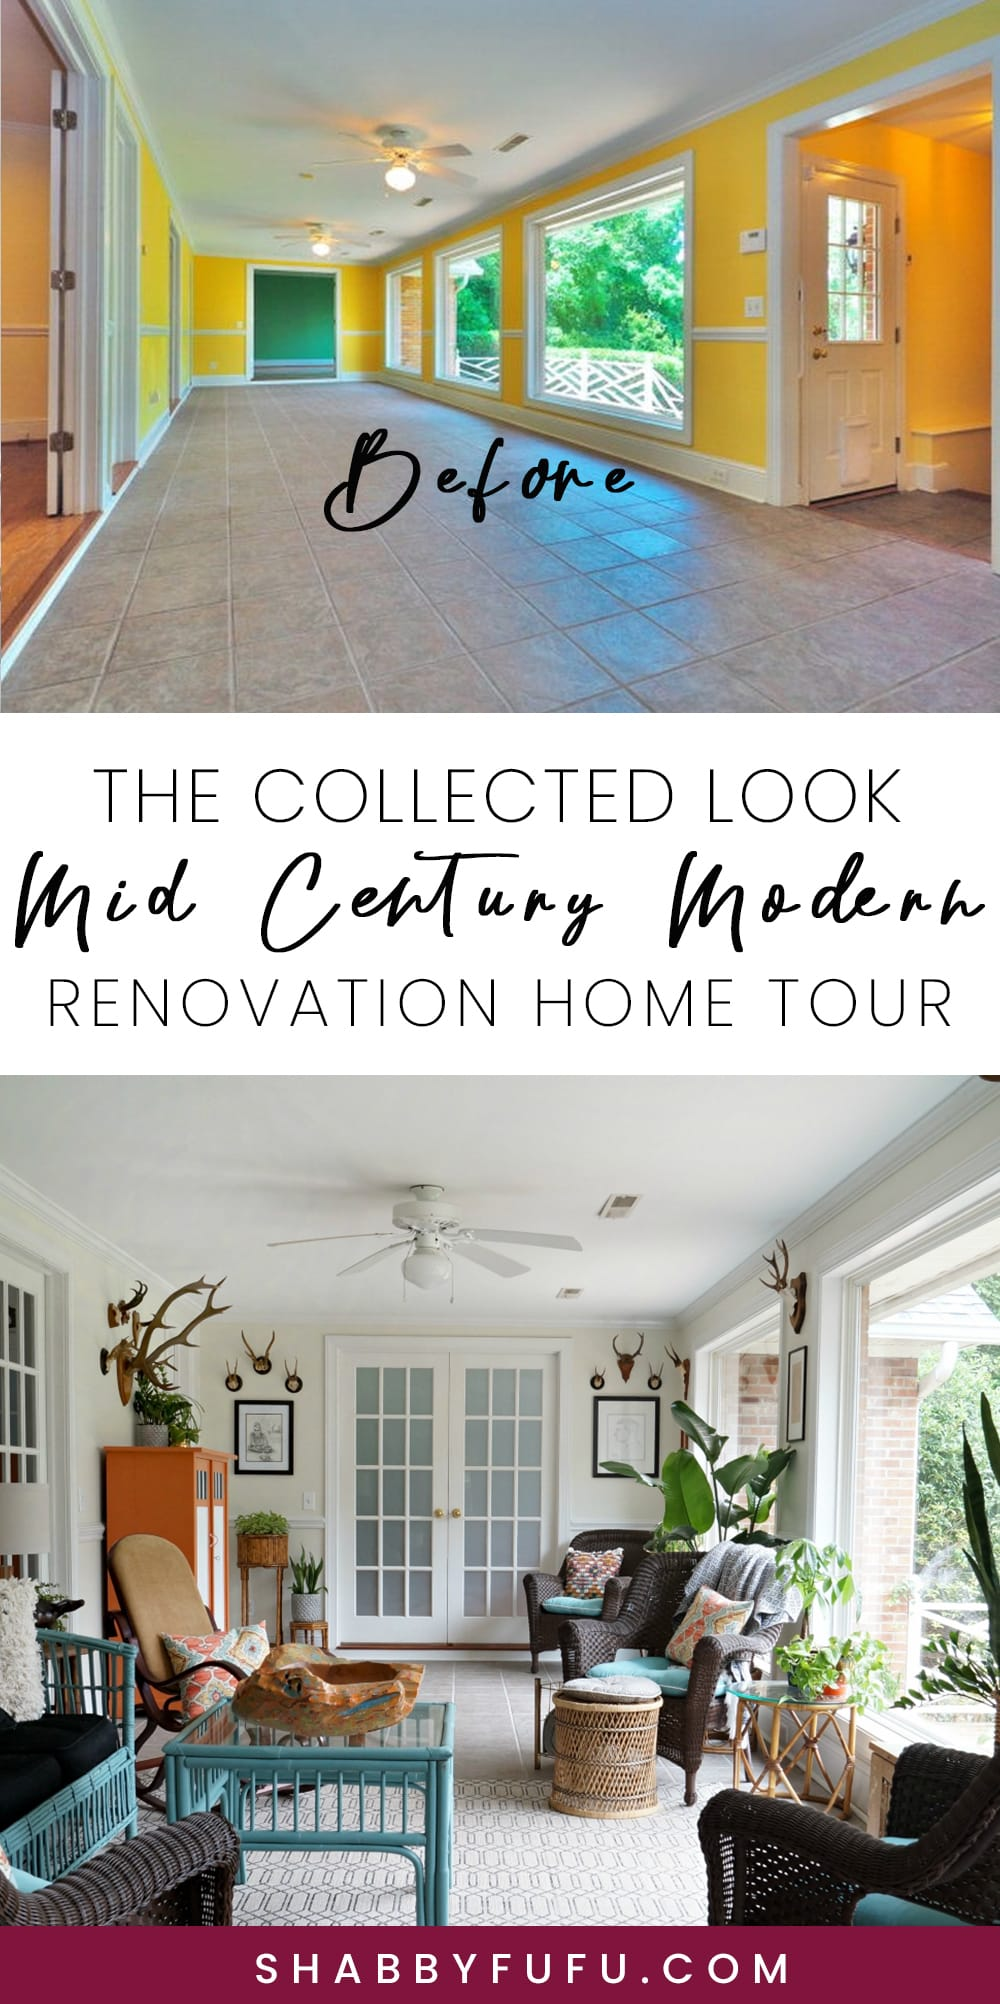 Shabbyfufu - Maggie Overby Home Tour